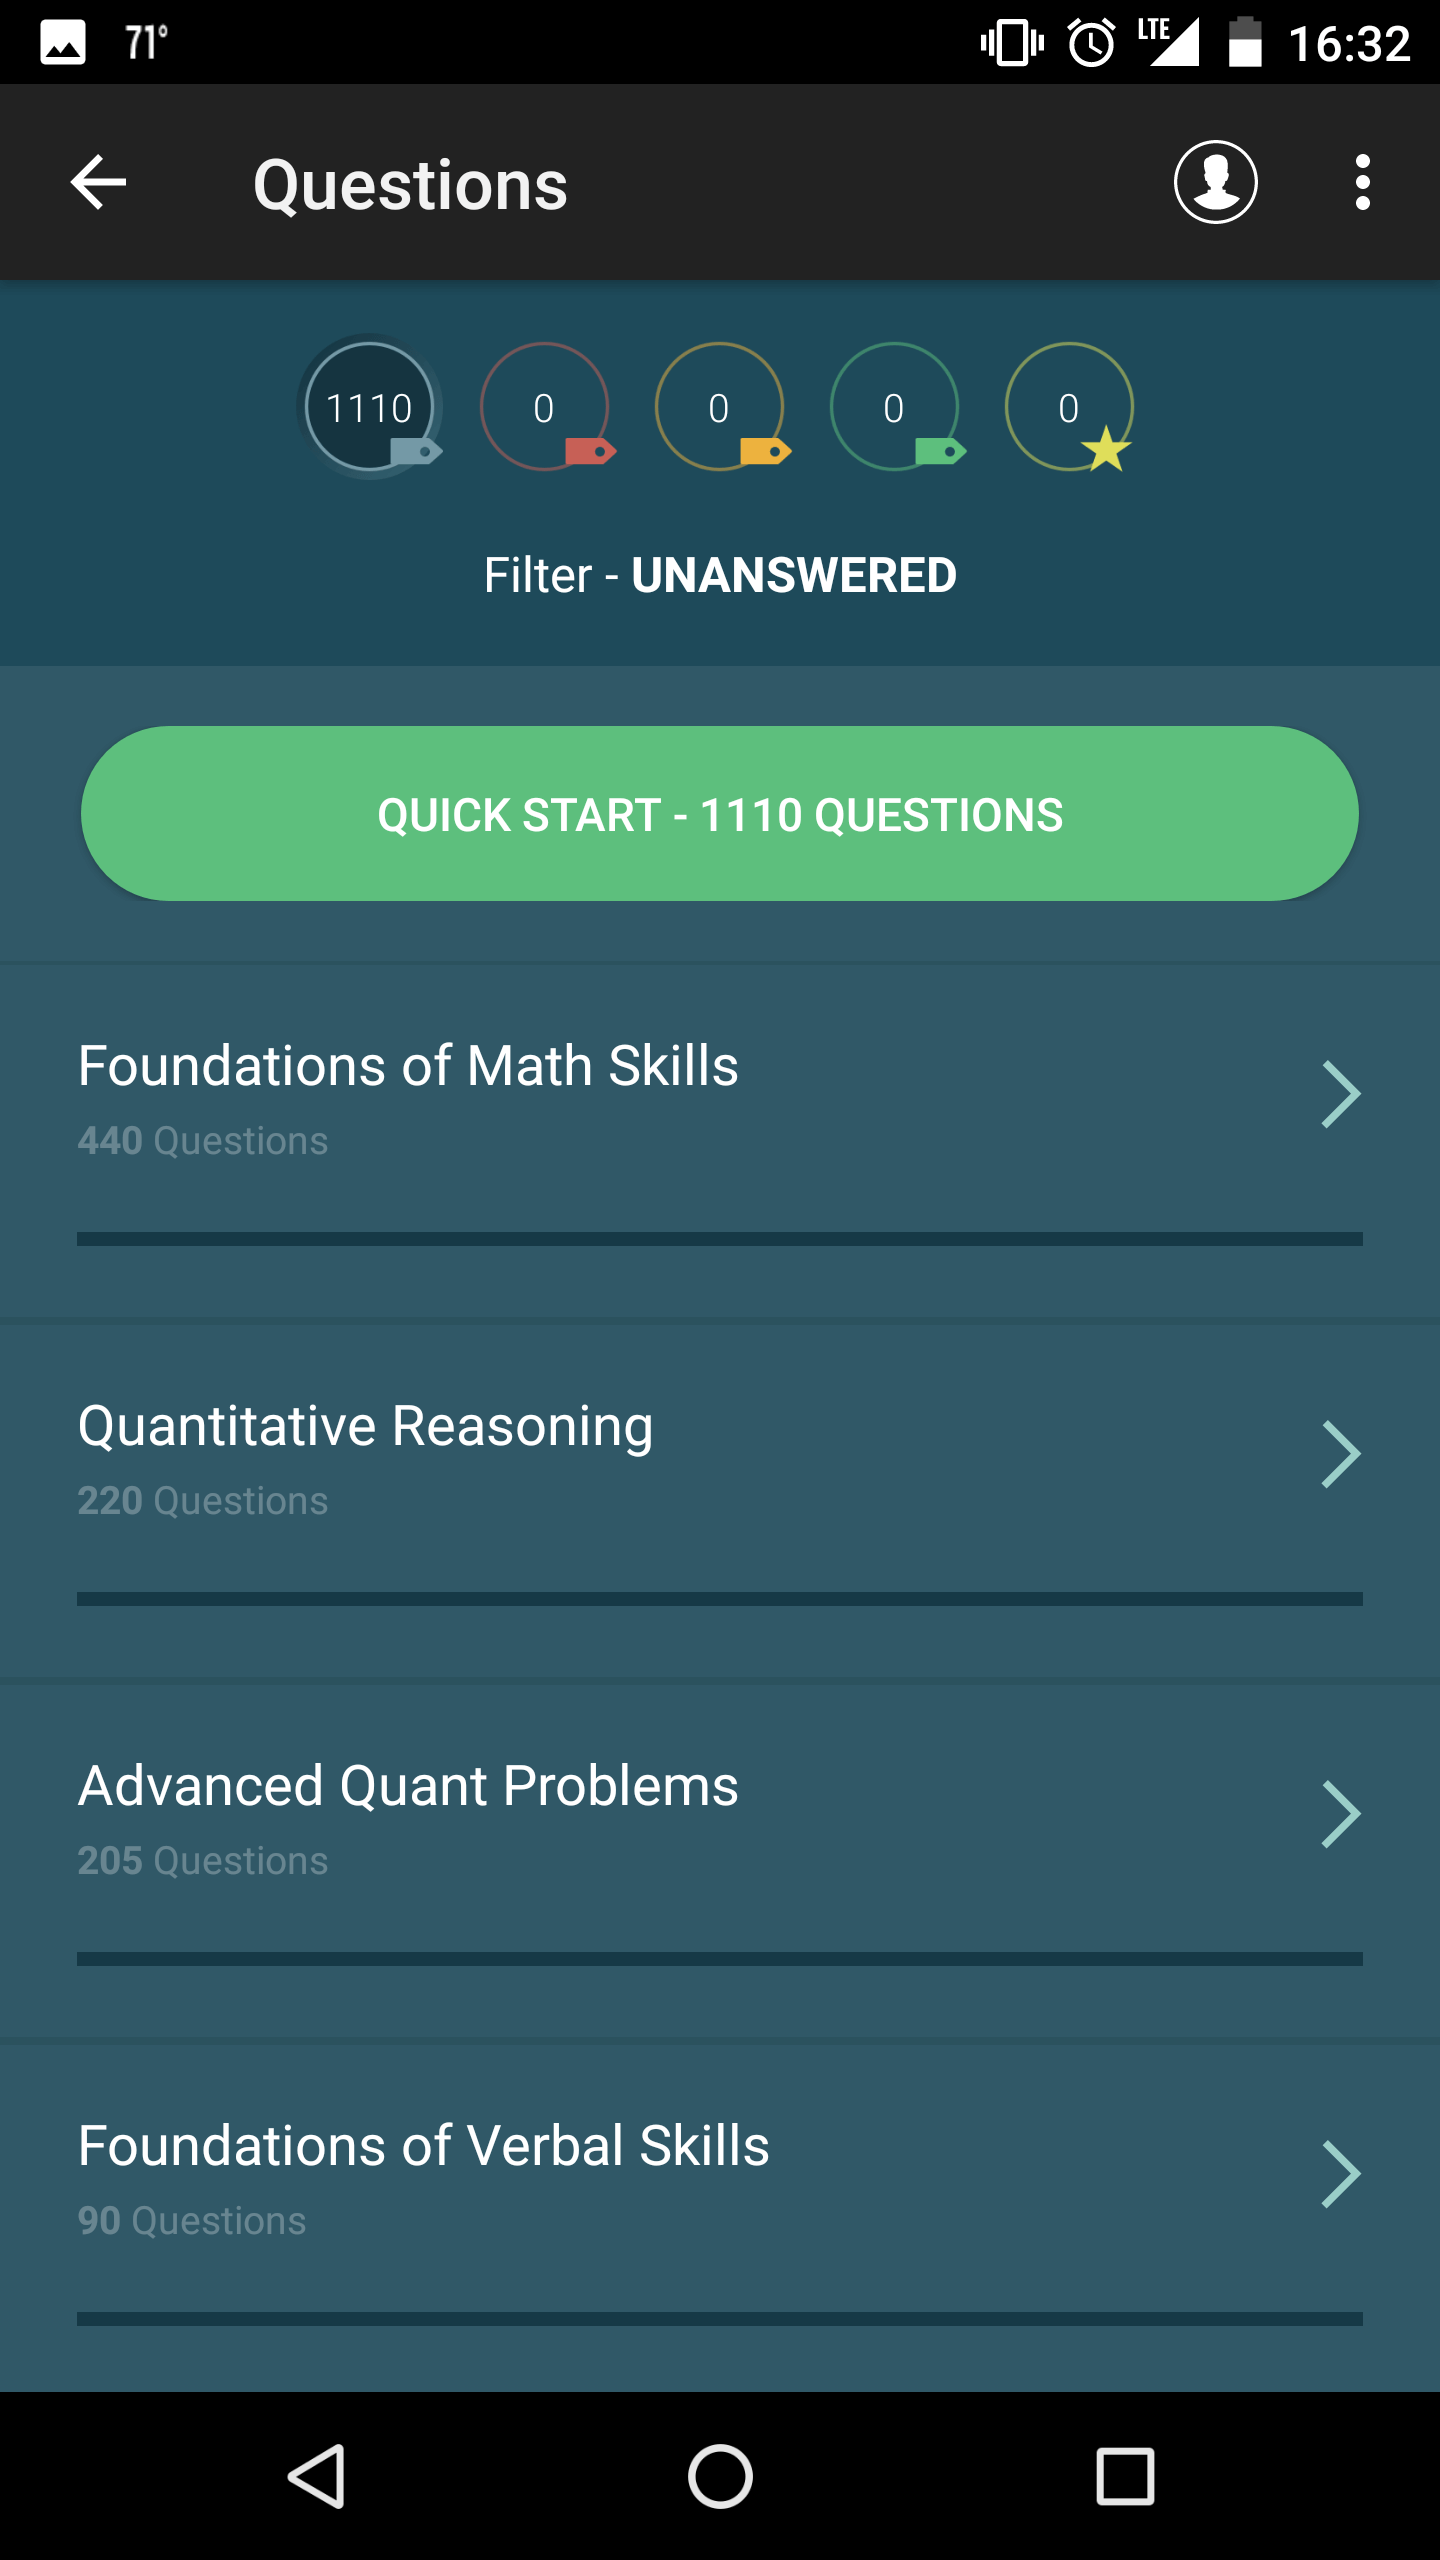 Nov 12,  · GMAT looming? Feeling overwhelmed? With the Manhattan Prep GMAT app you can maximize your study time and conquer the GMAT. This app features 1,+ practice questions and immediate feedback so you can celebrate your strengths and focus in on any weaknesses. With the Manhattan Prep GMAT app, you can study for the GMAT anytime, anywhere/5().